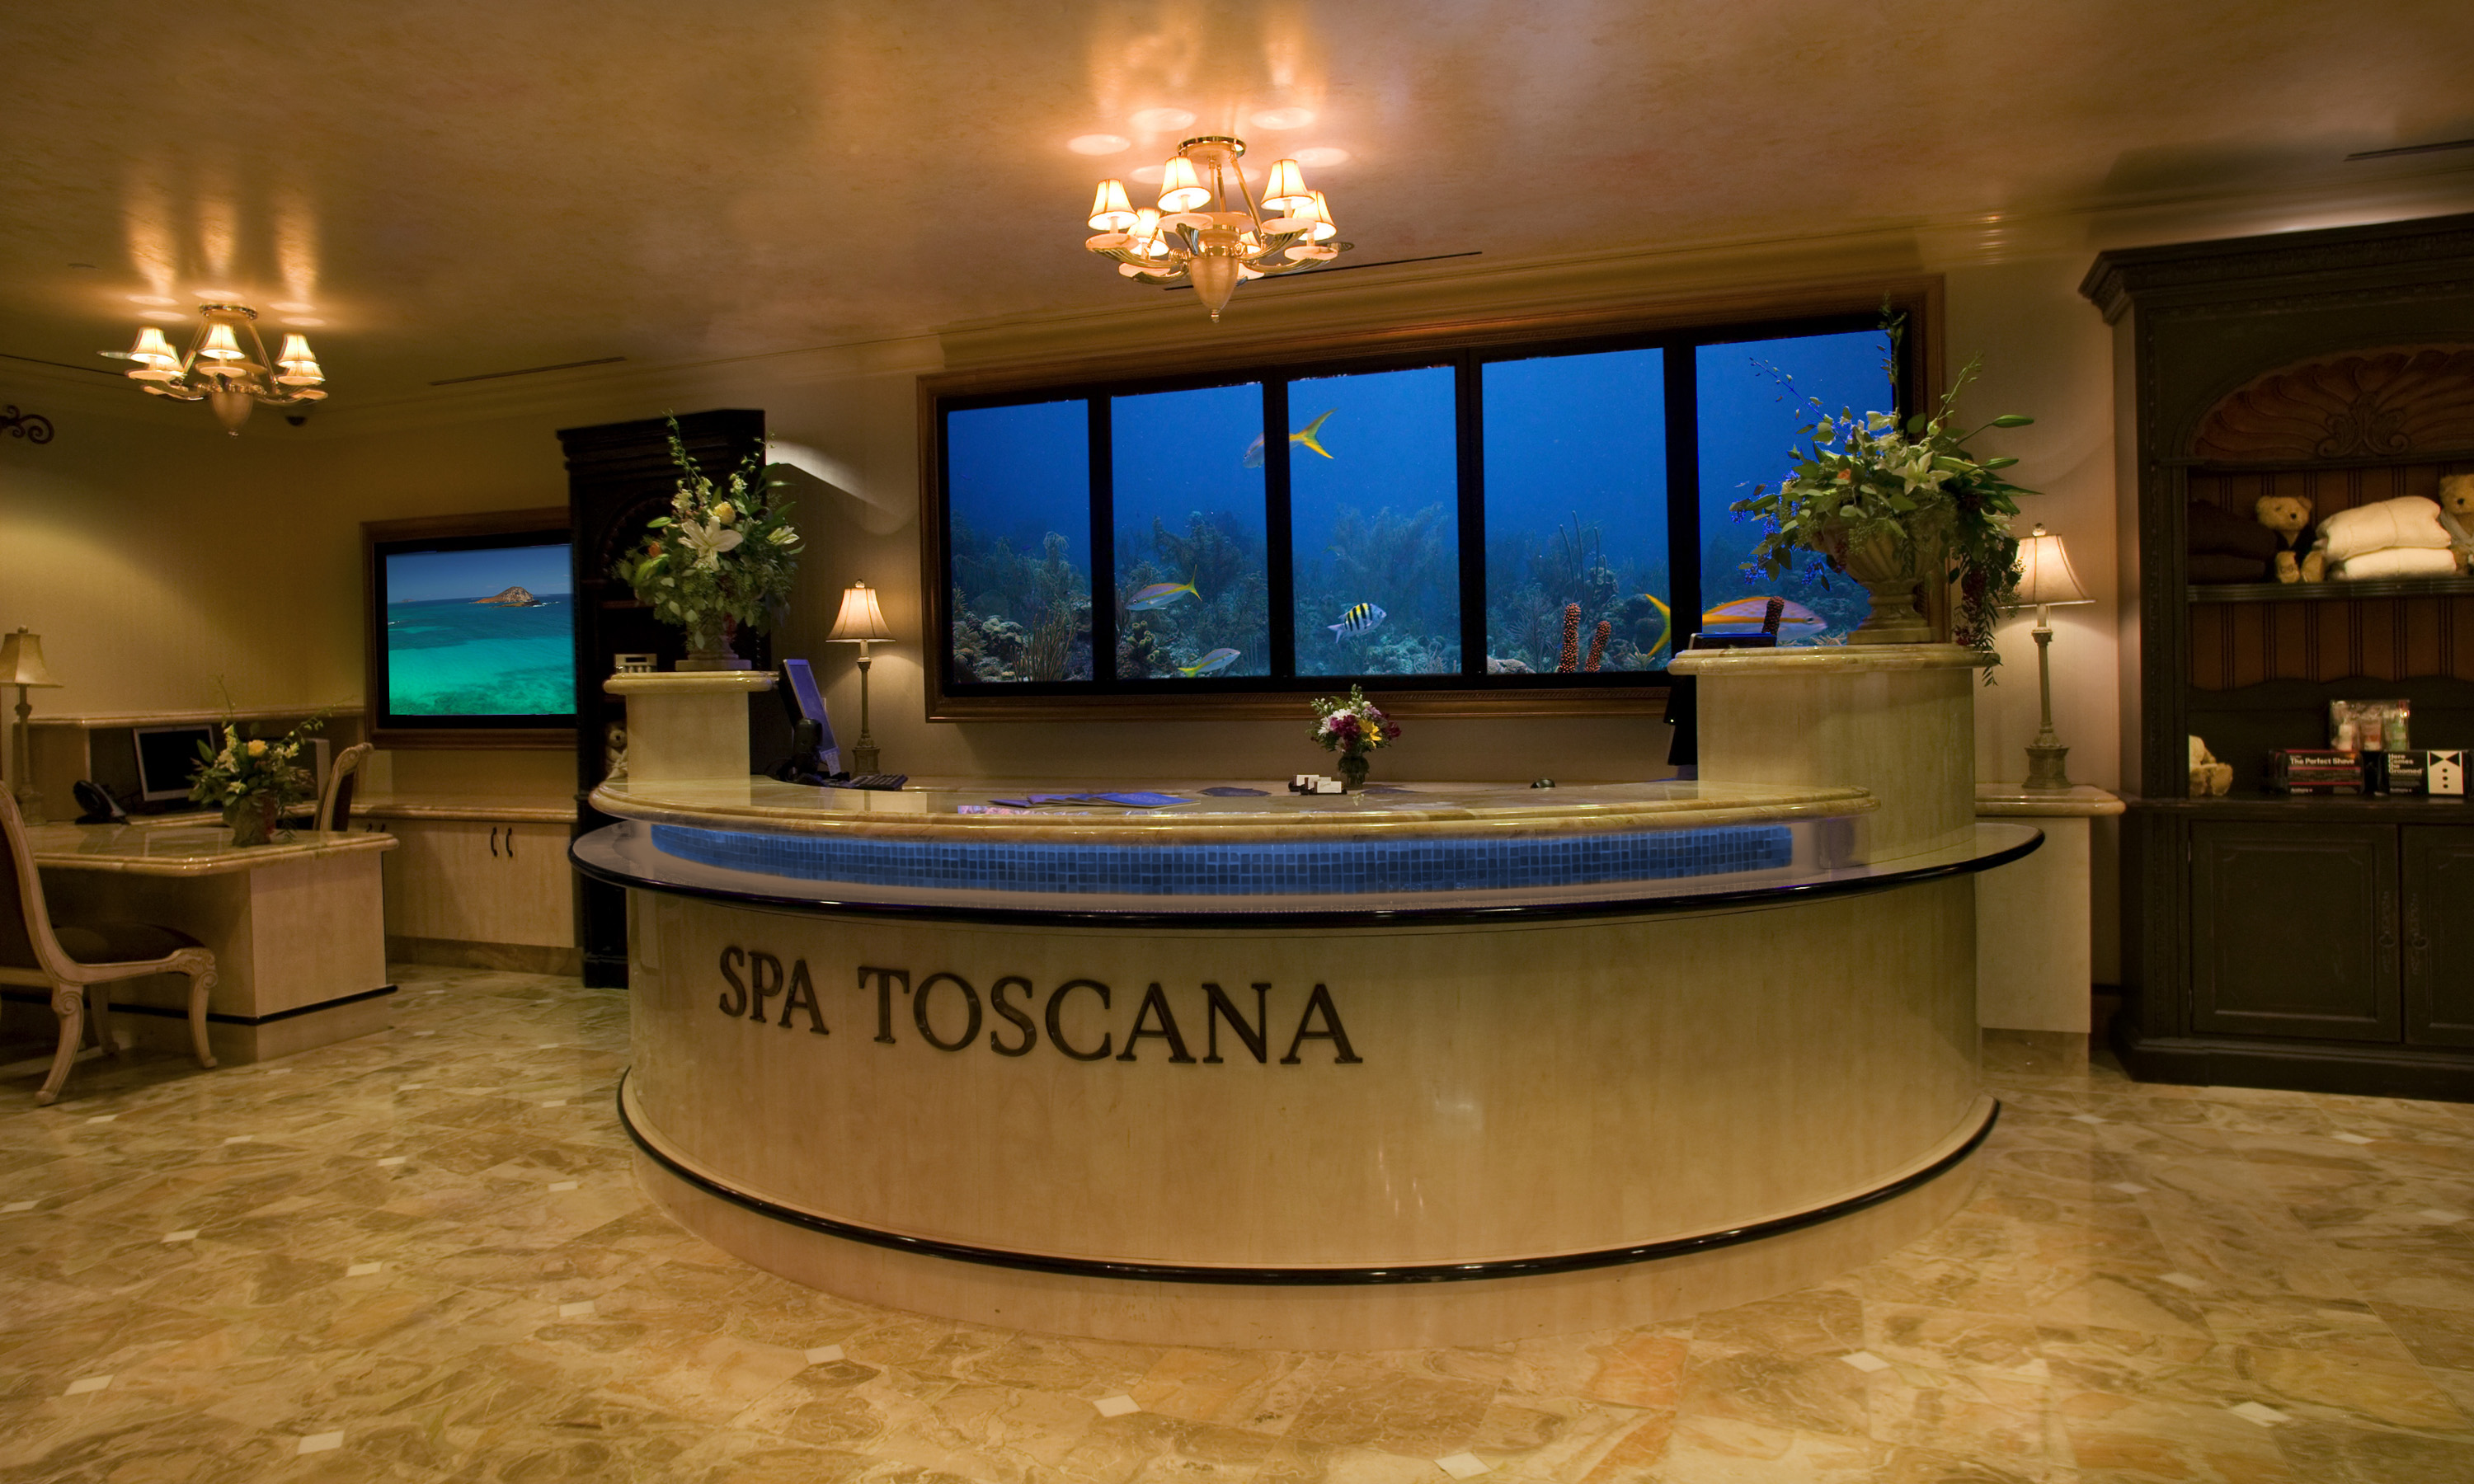 Spa toscana reno 39 s best spa and salon peppermill reno nv for Above ground salon